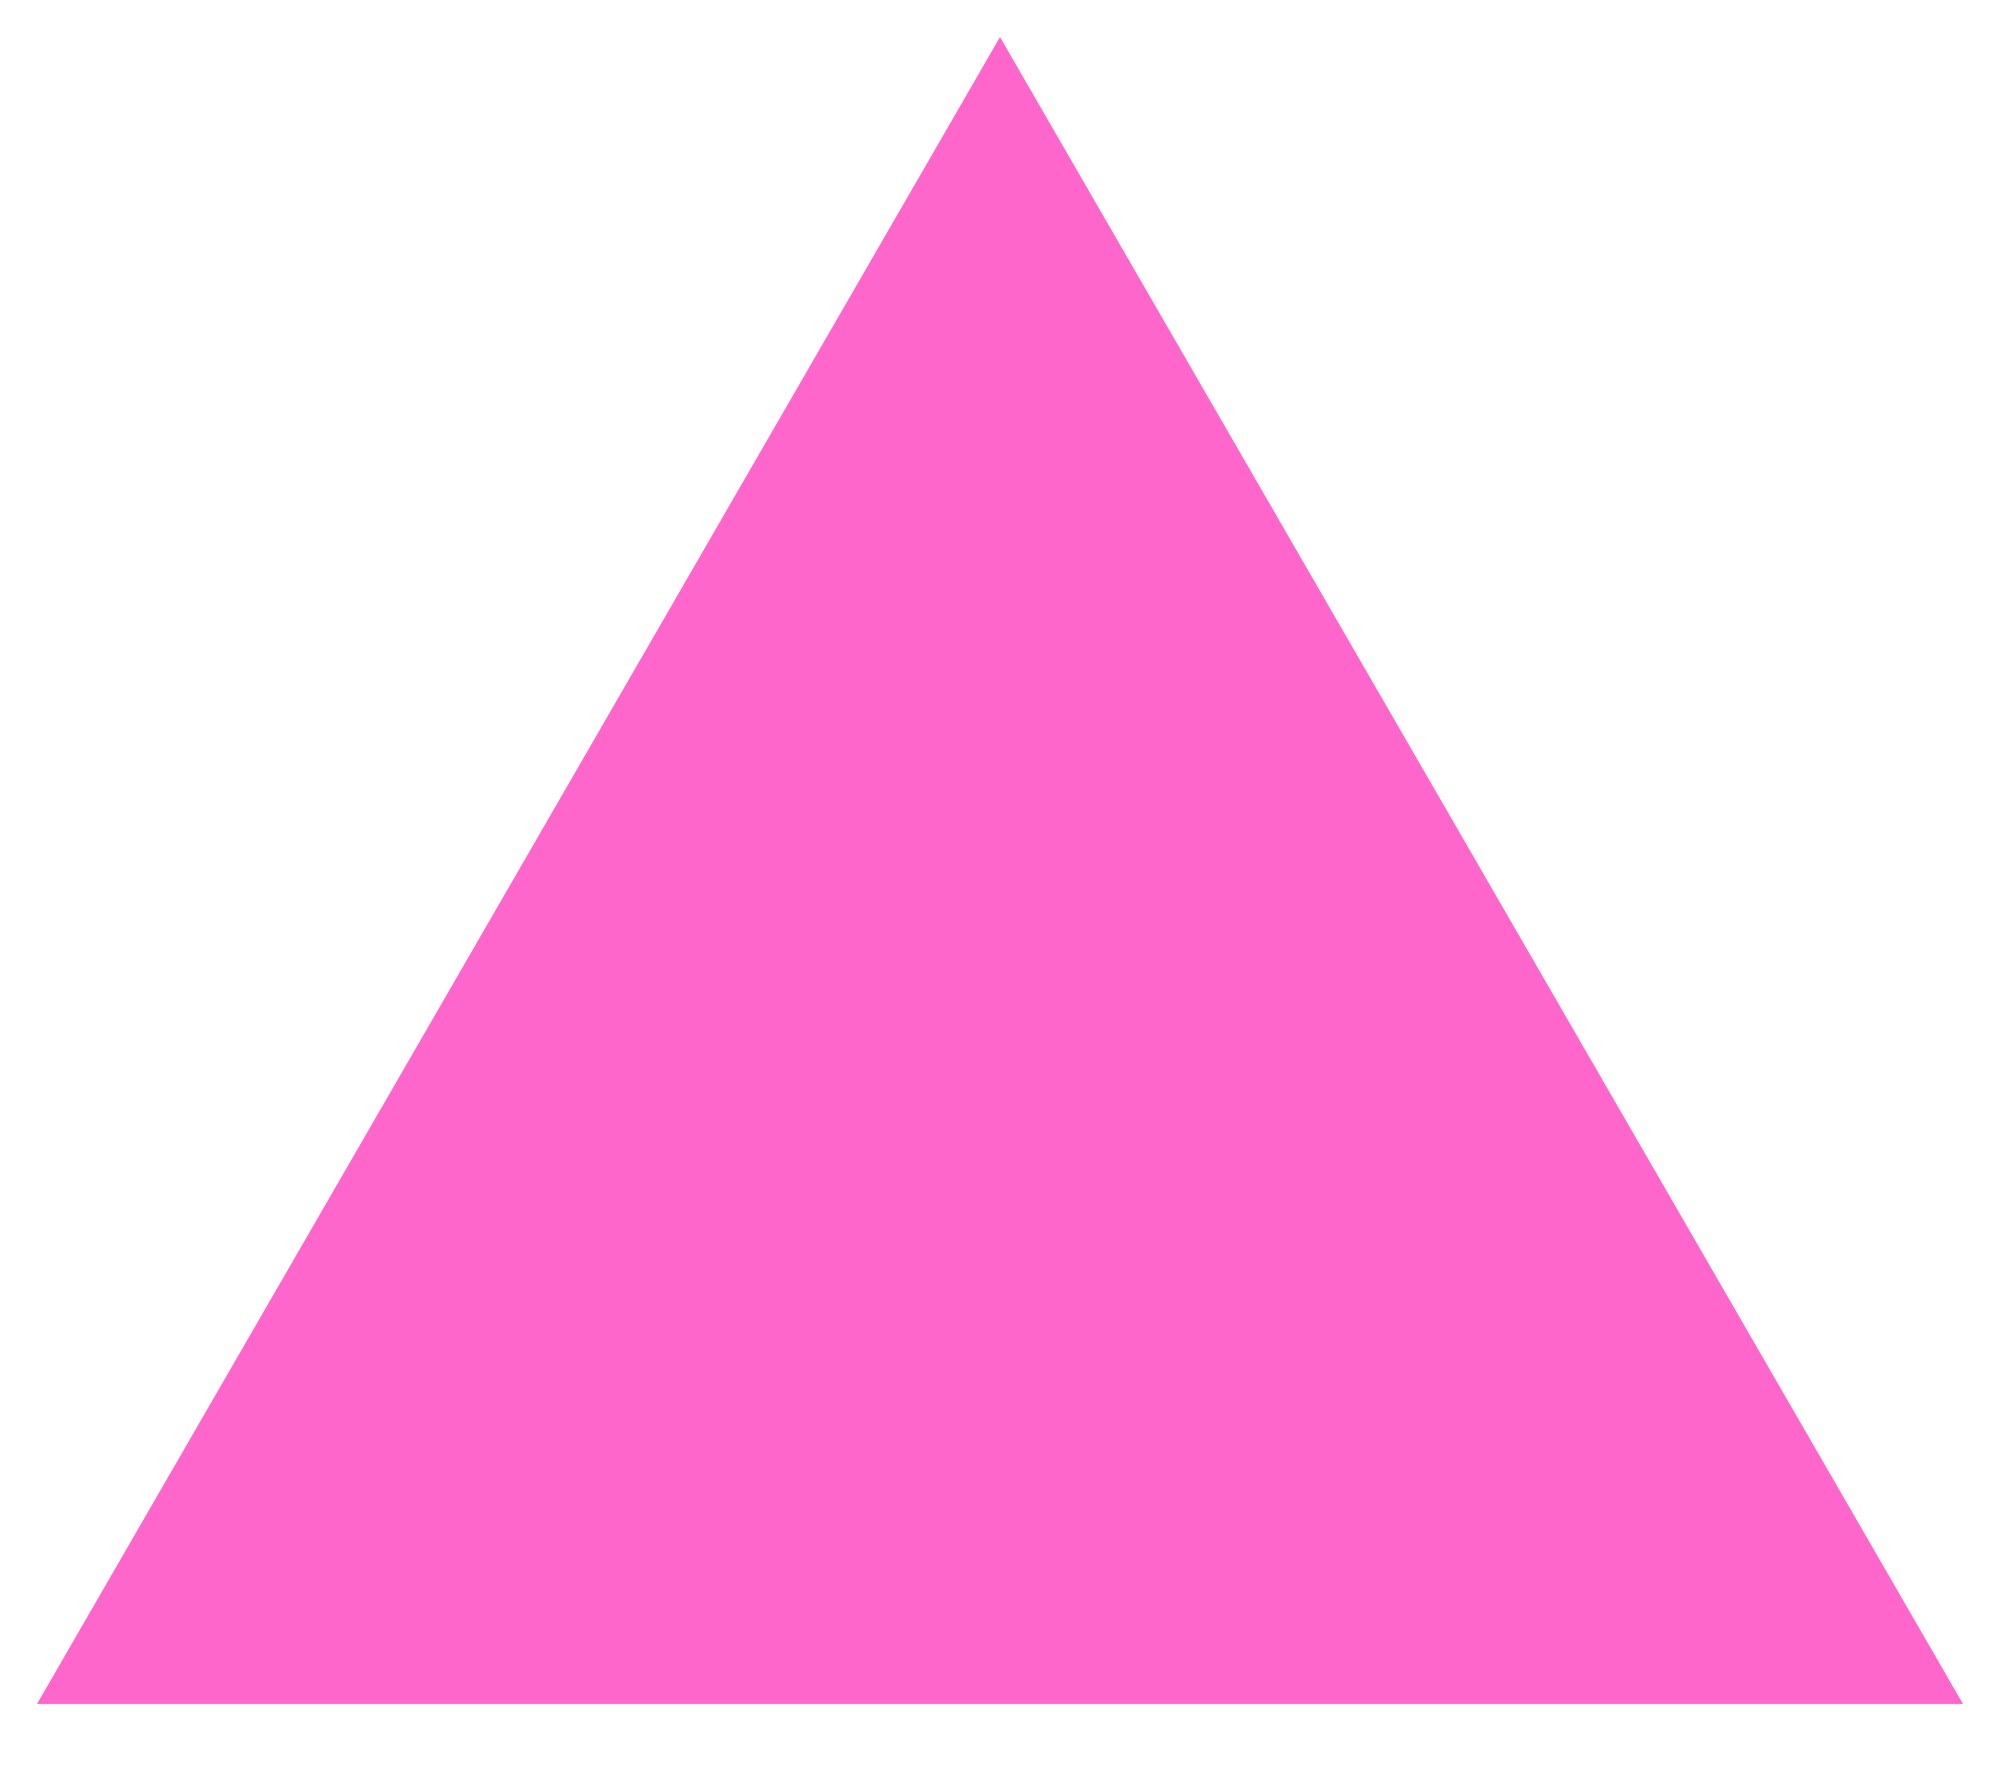 Pink Triangle Png image #42403